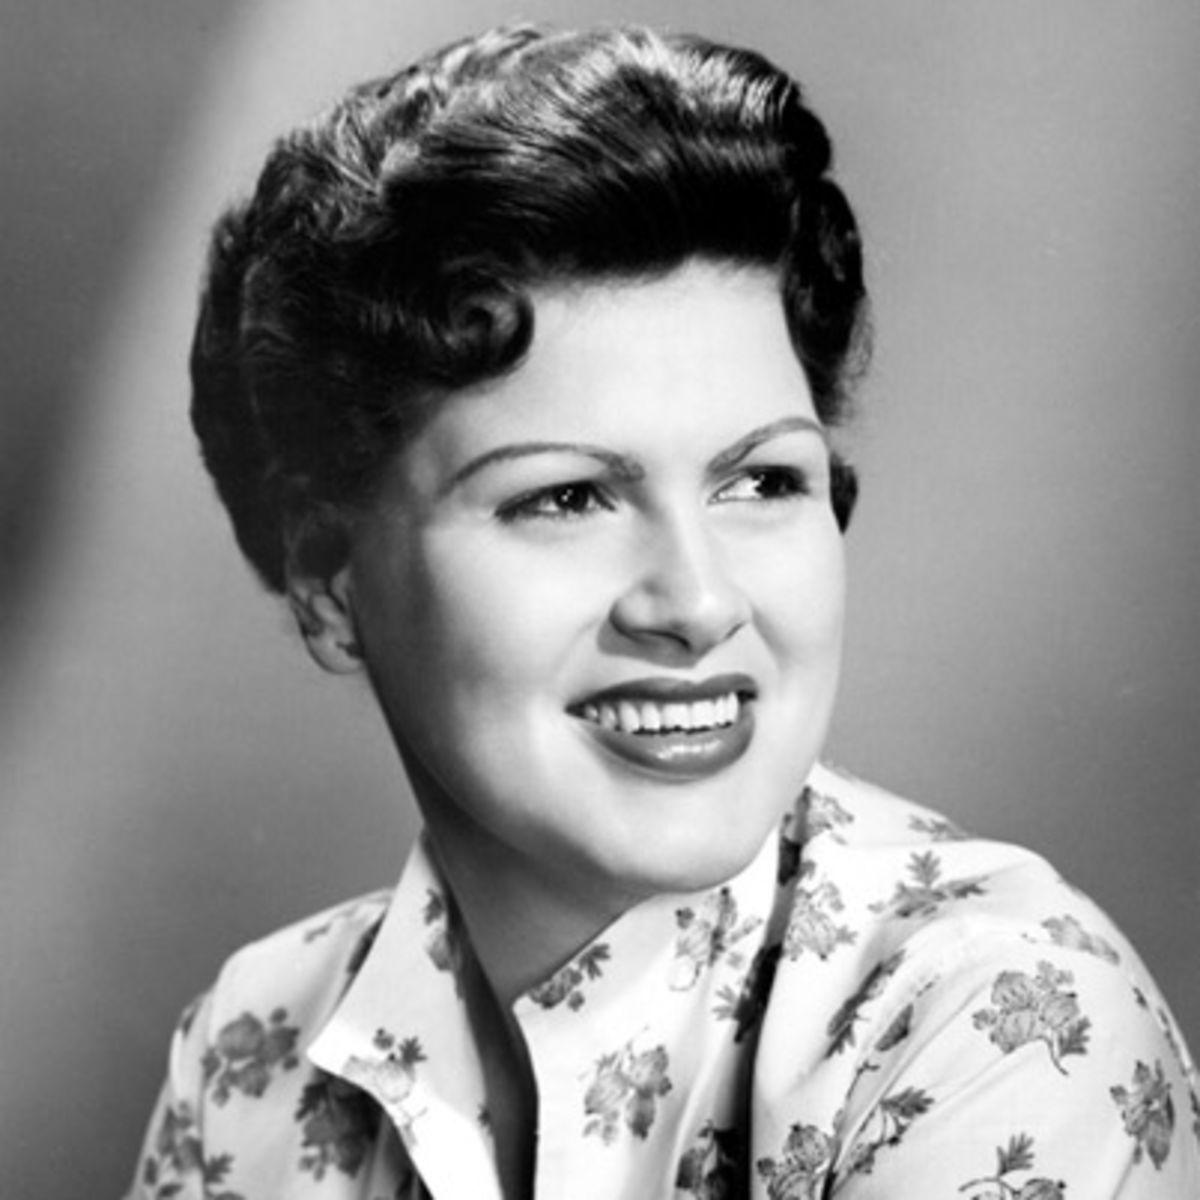 MUSIC TIP: PATSY CLINE